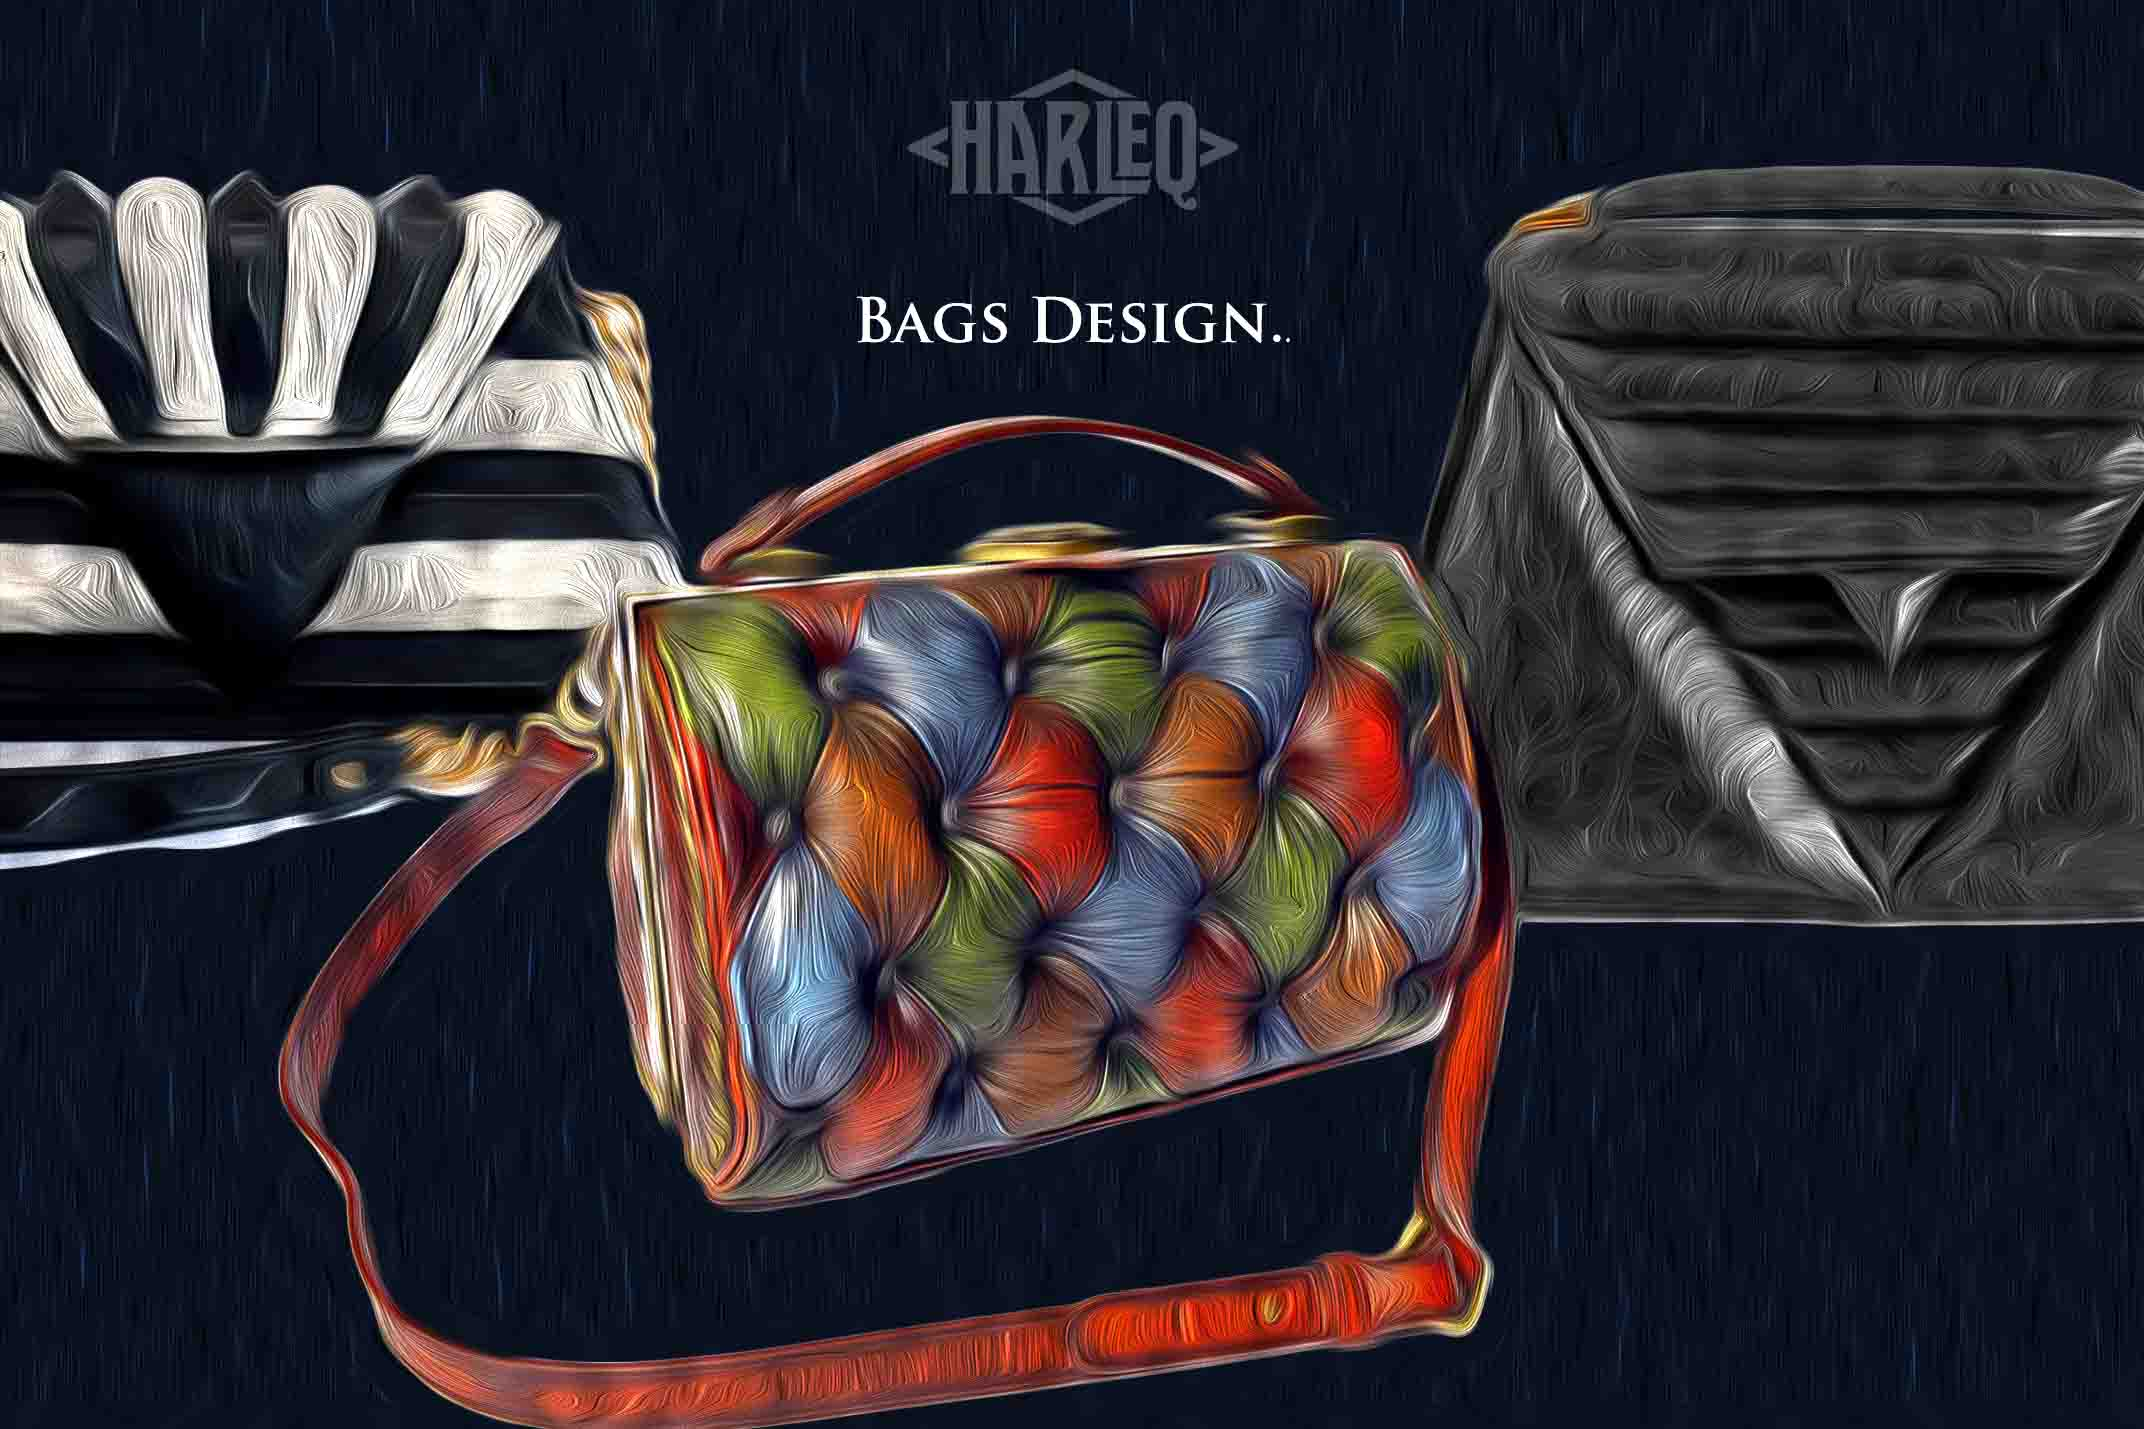 luxury-harleq-leathers-bags-design